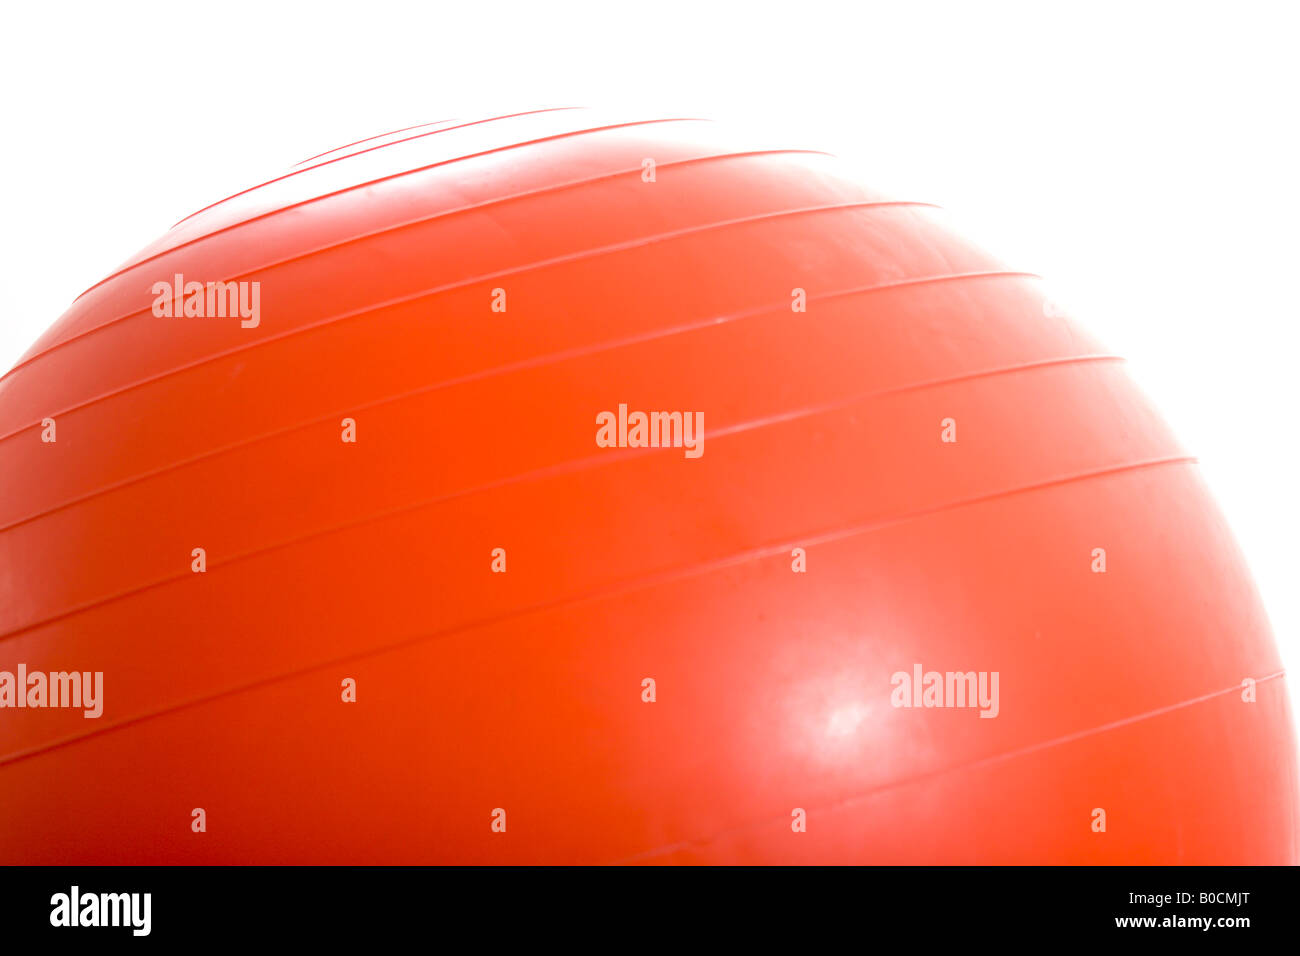 Exercise ball - Stock Image